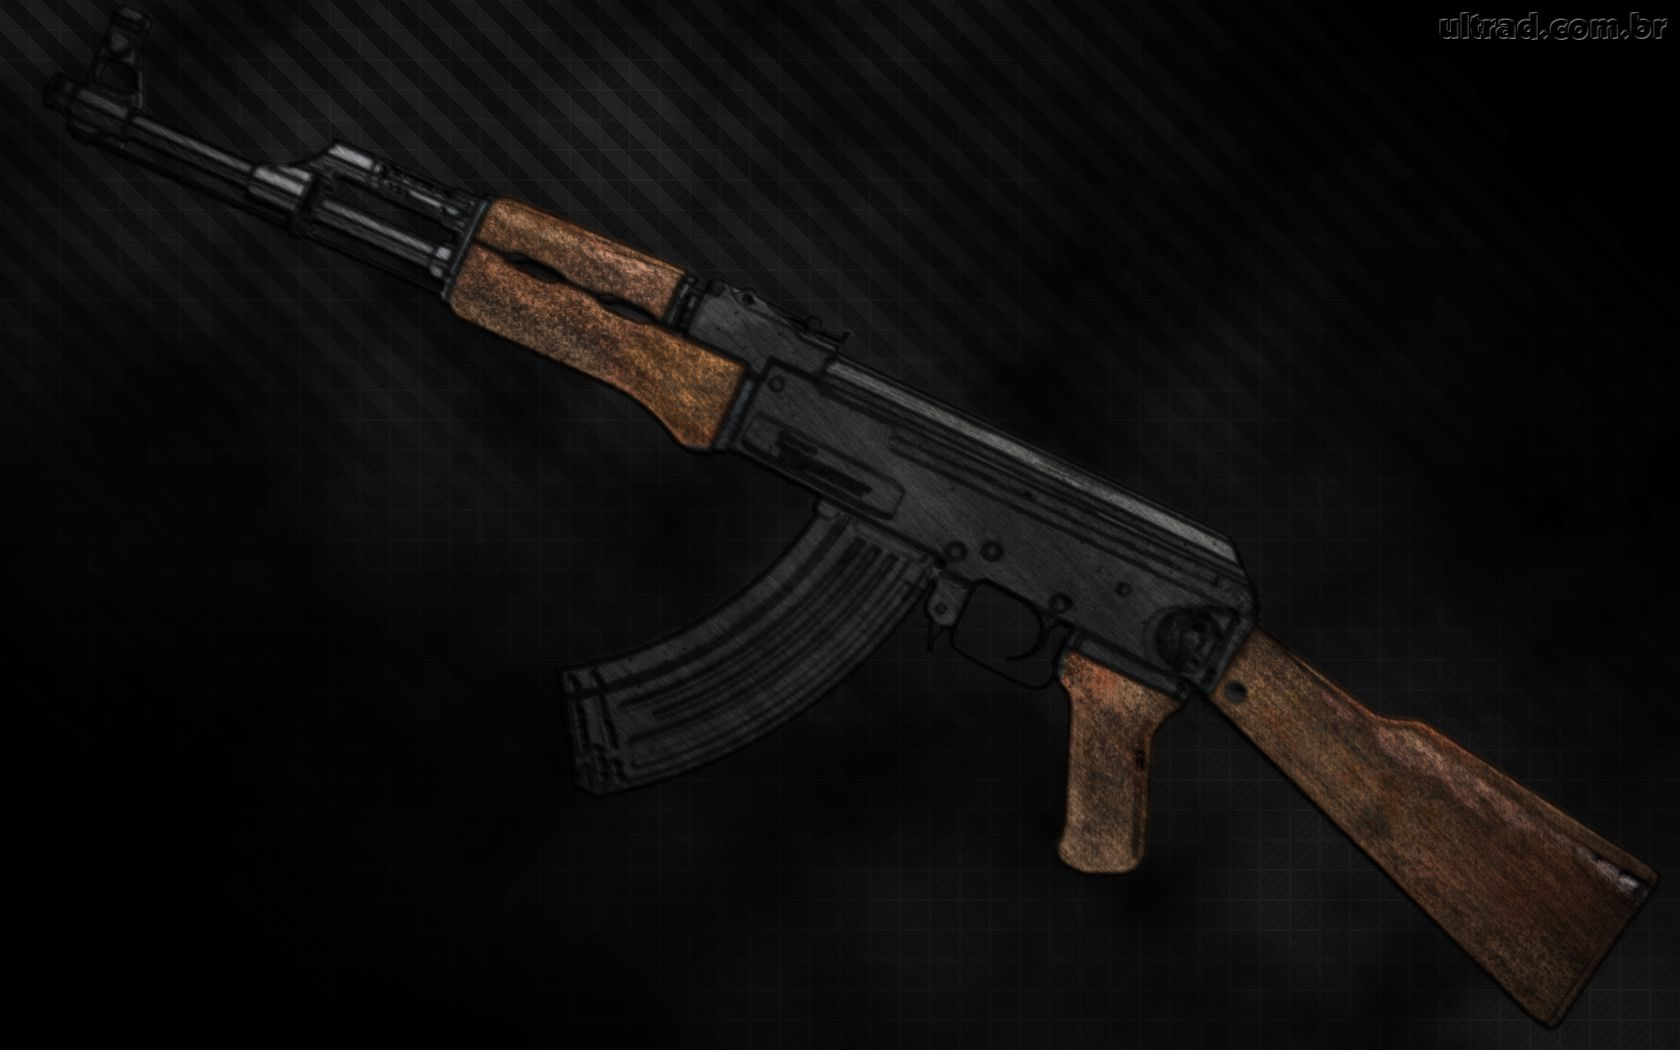 Ak 47 Felix Background Wallpaper Ak 47 Felix Background Desktop 1680x1050